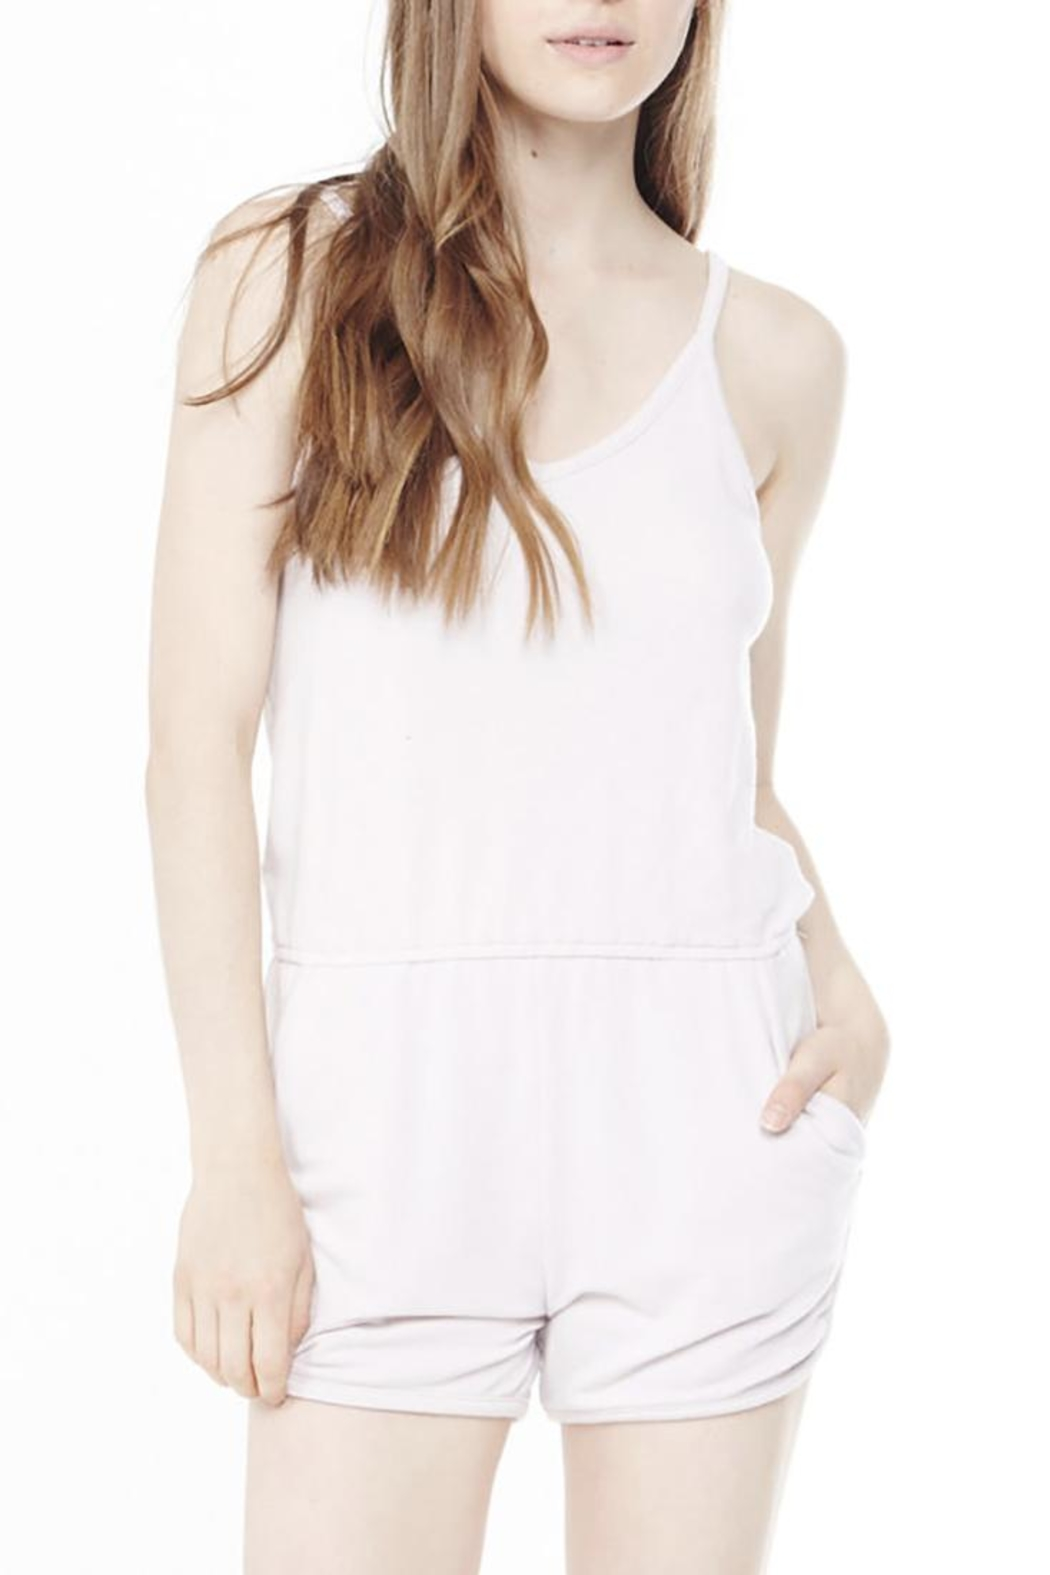 Michelle by Comune Kerens French Romper - Main Image